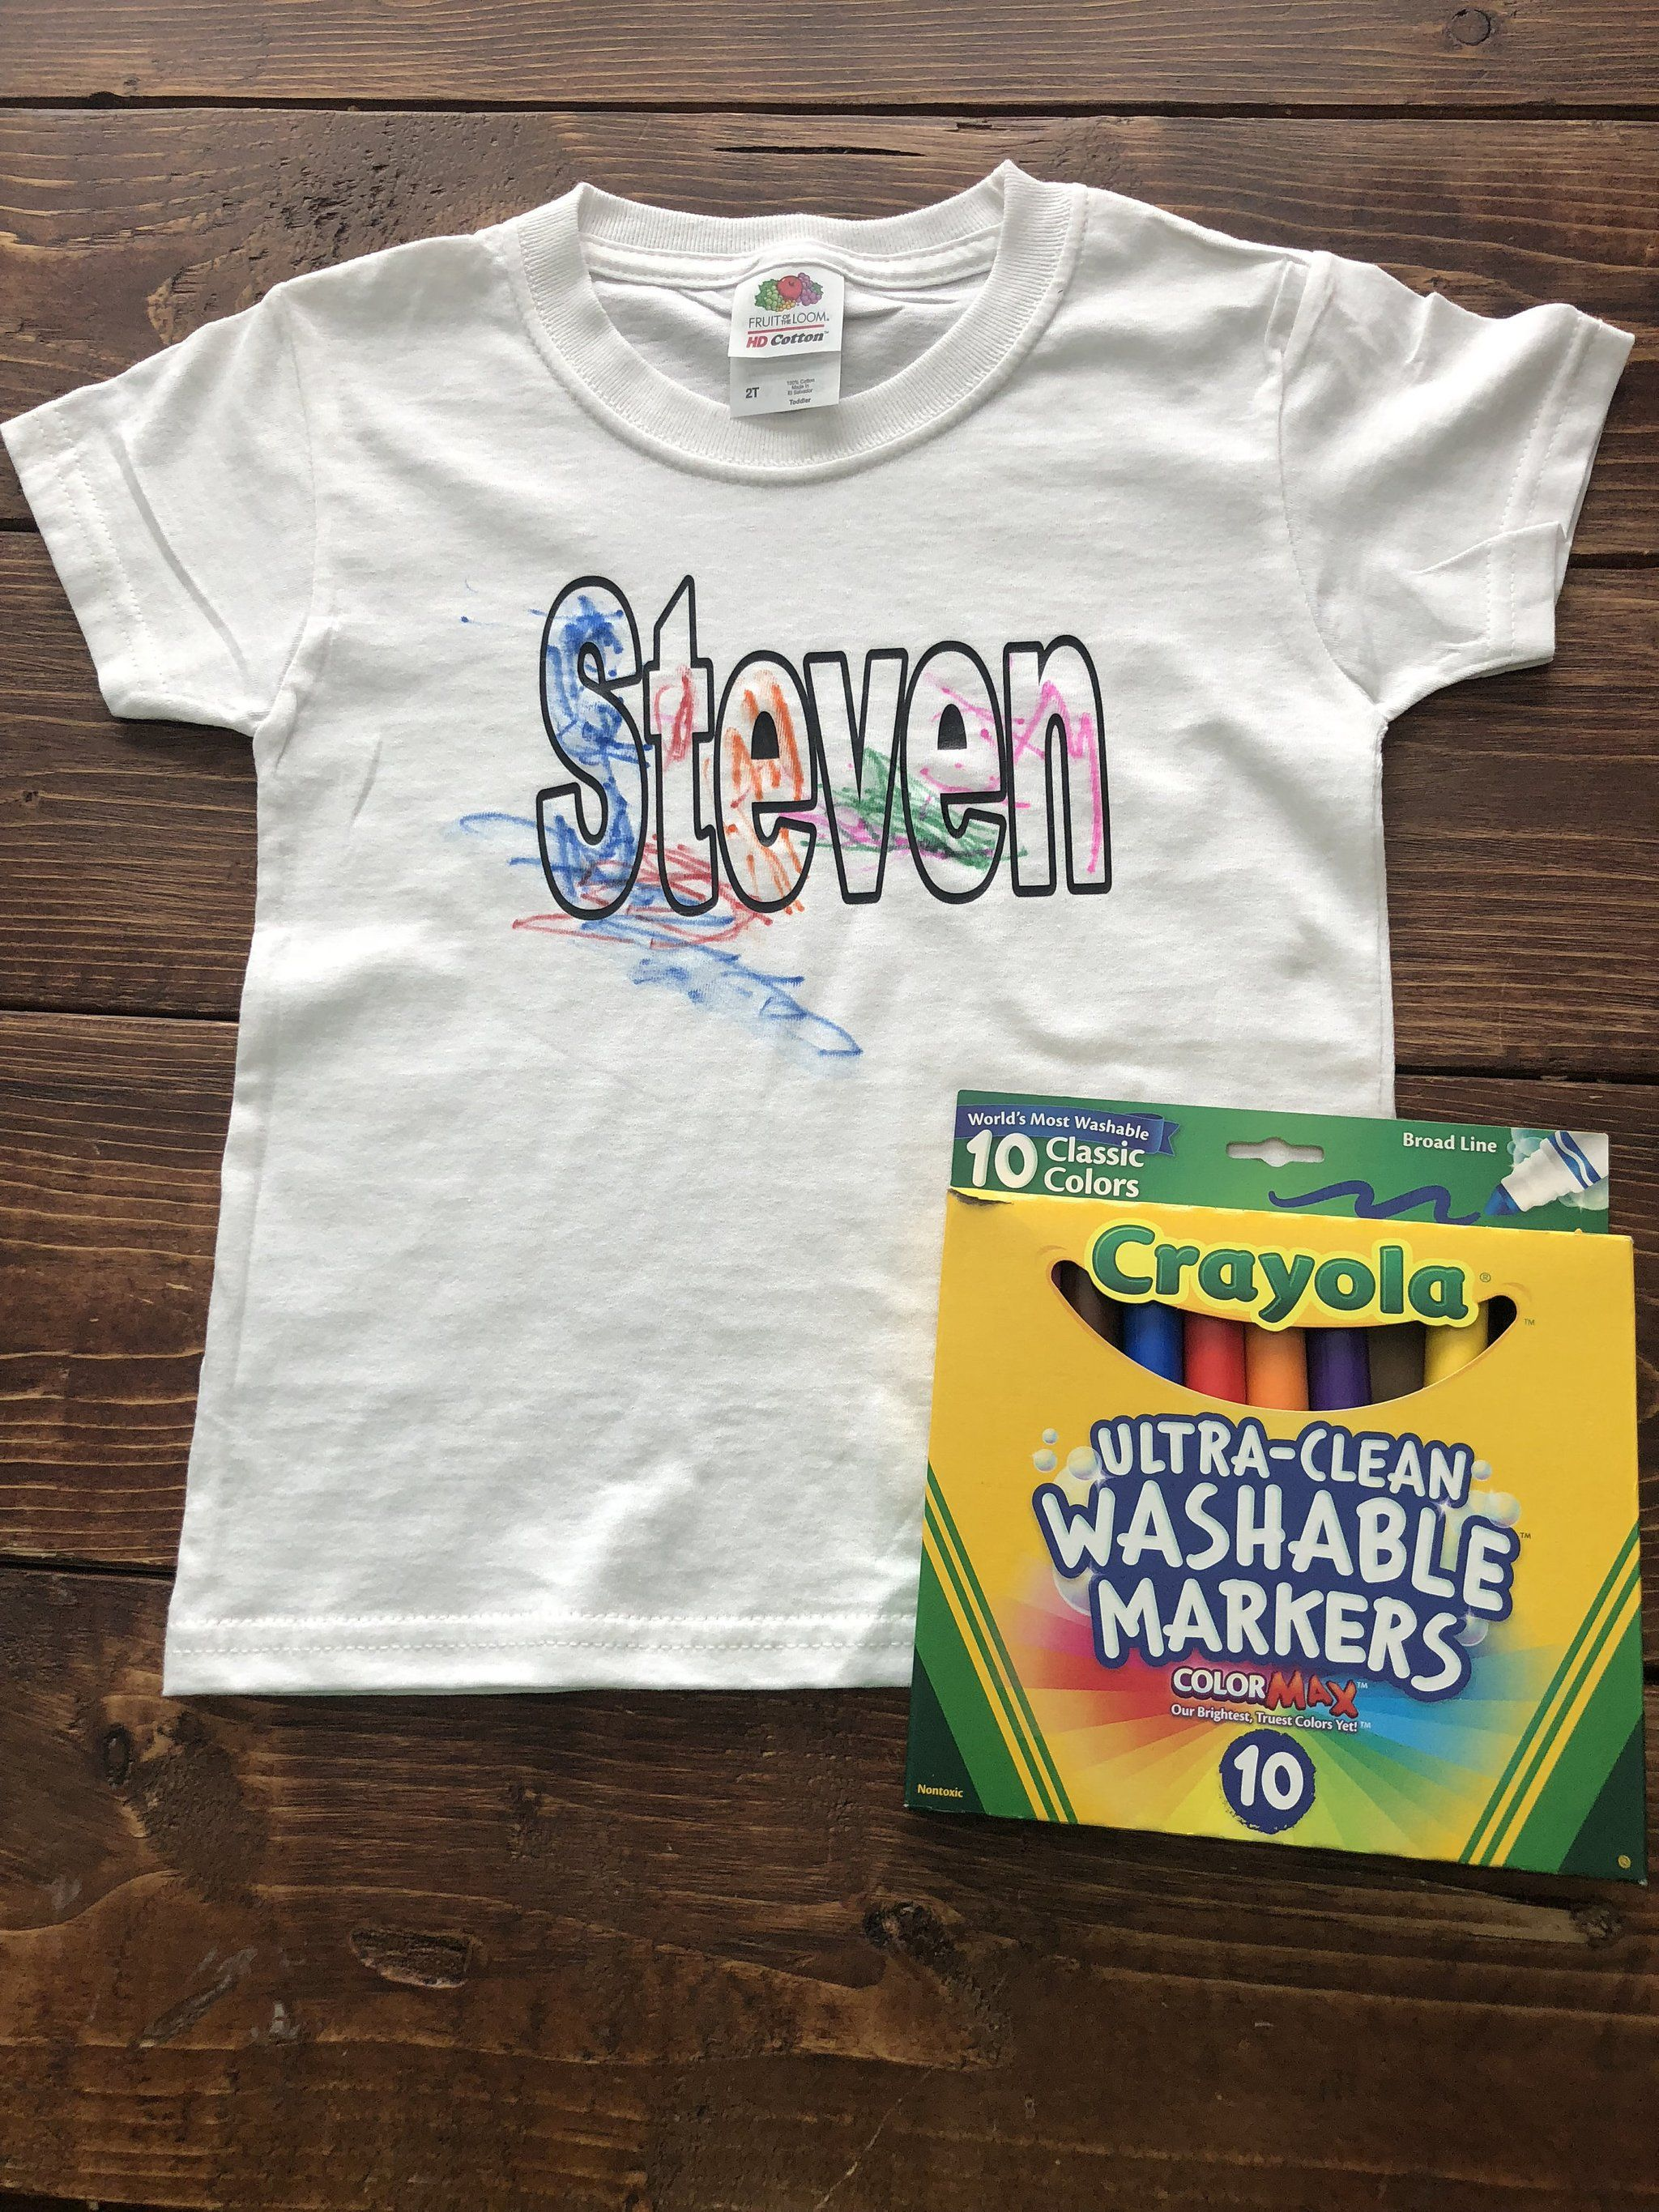 728255c54 Name Practice | Coloring Shirts | Color Shirt | Coloring Book Shirt |  Preschool Shirt | Preschool Gifts | Craft Kit for Kids